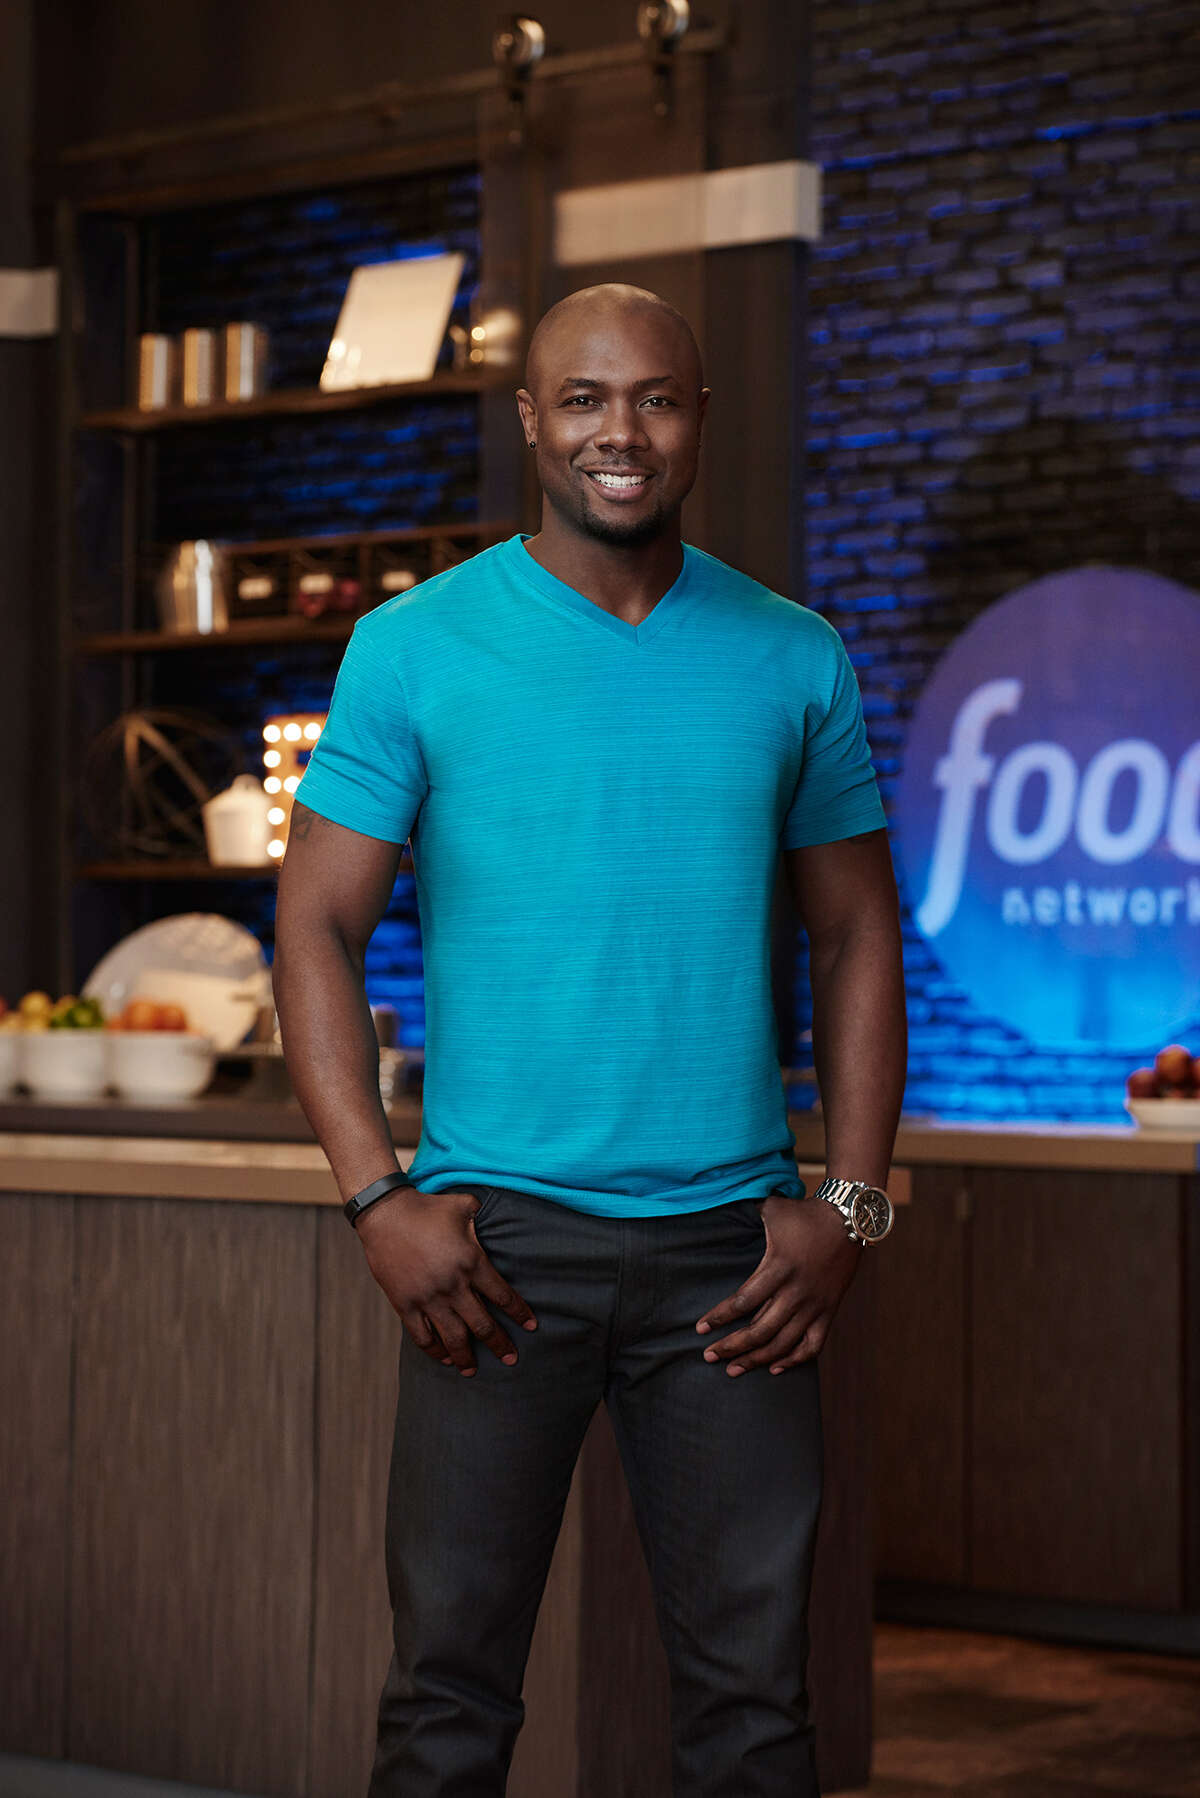 Houston's Eddie Jackson, a physical trainer and former NFL player, is one of the contestants on 11th season of